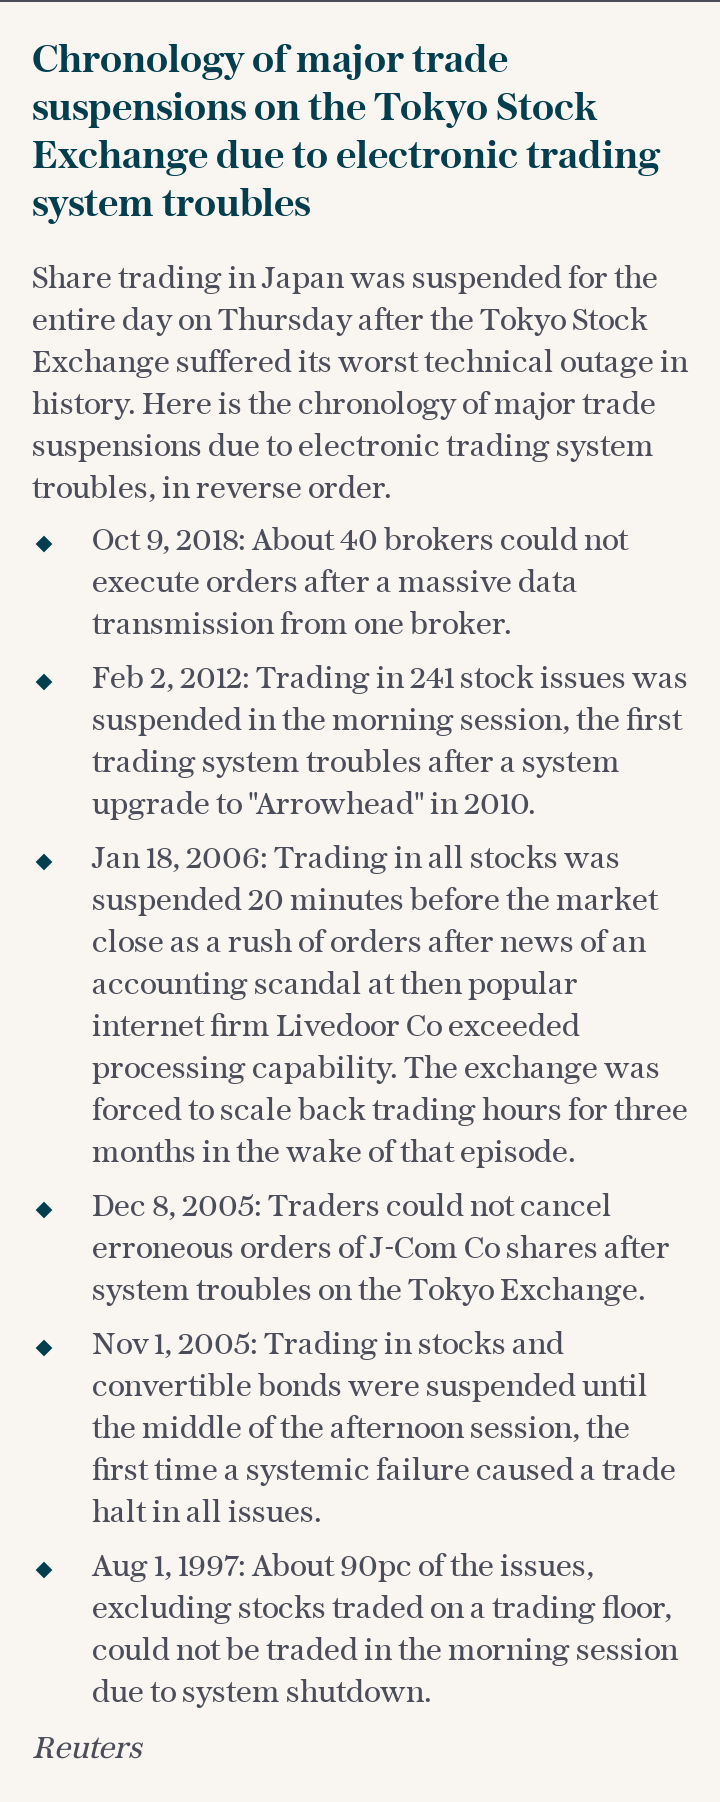 Chronology of major trade suspensions on the Tokyo Stock Exchange due to electronic trading system troubles